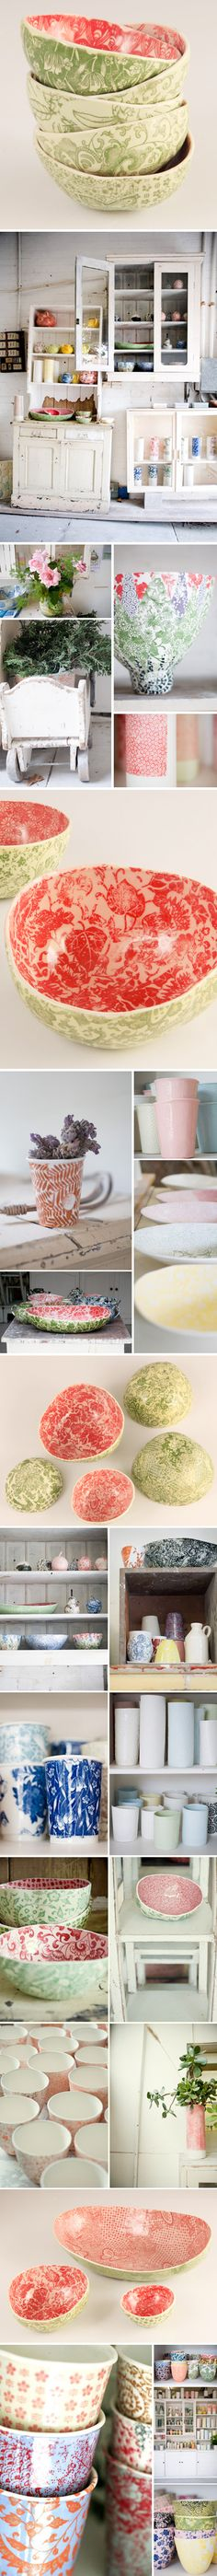 samantha robinson ~ porcelain creations AND her gorgeous studio! <3